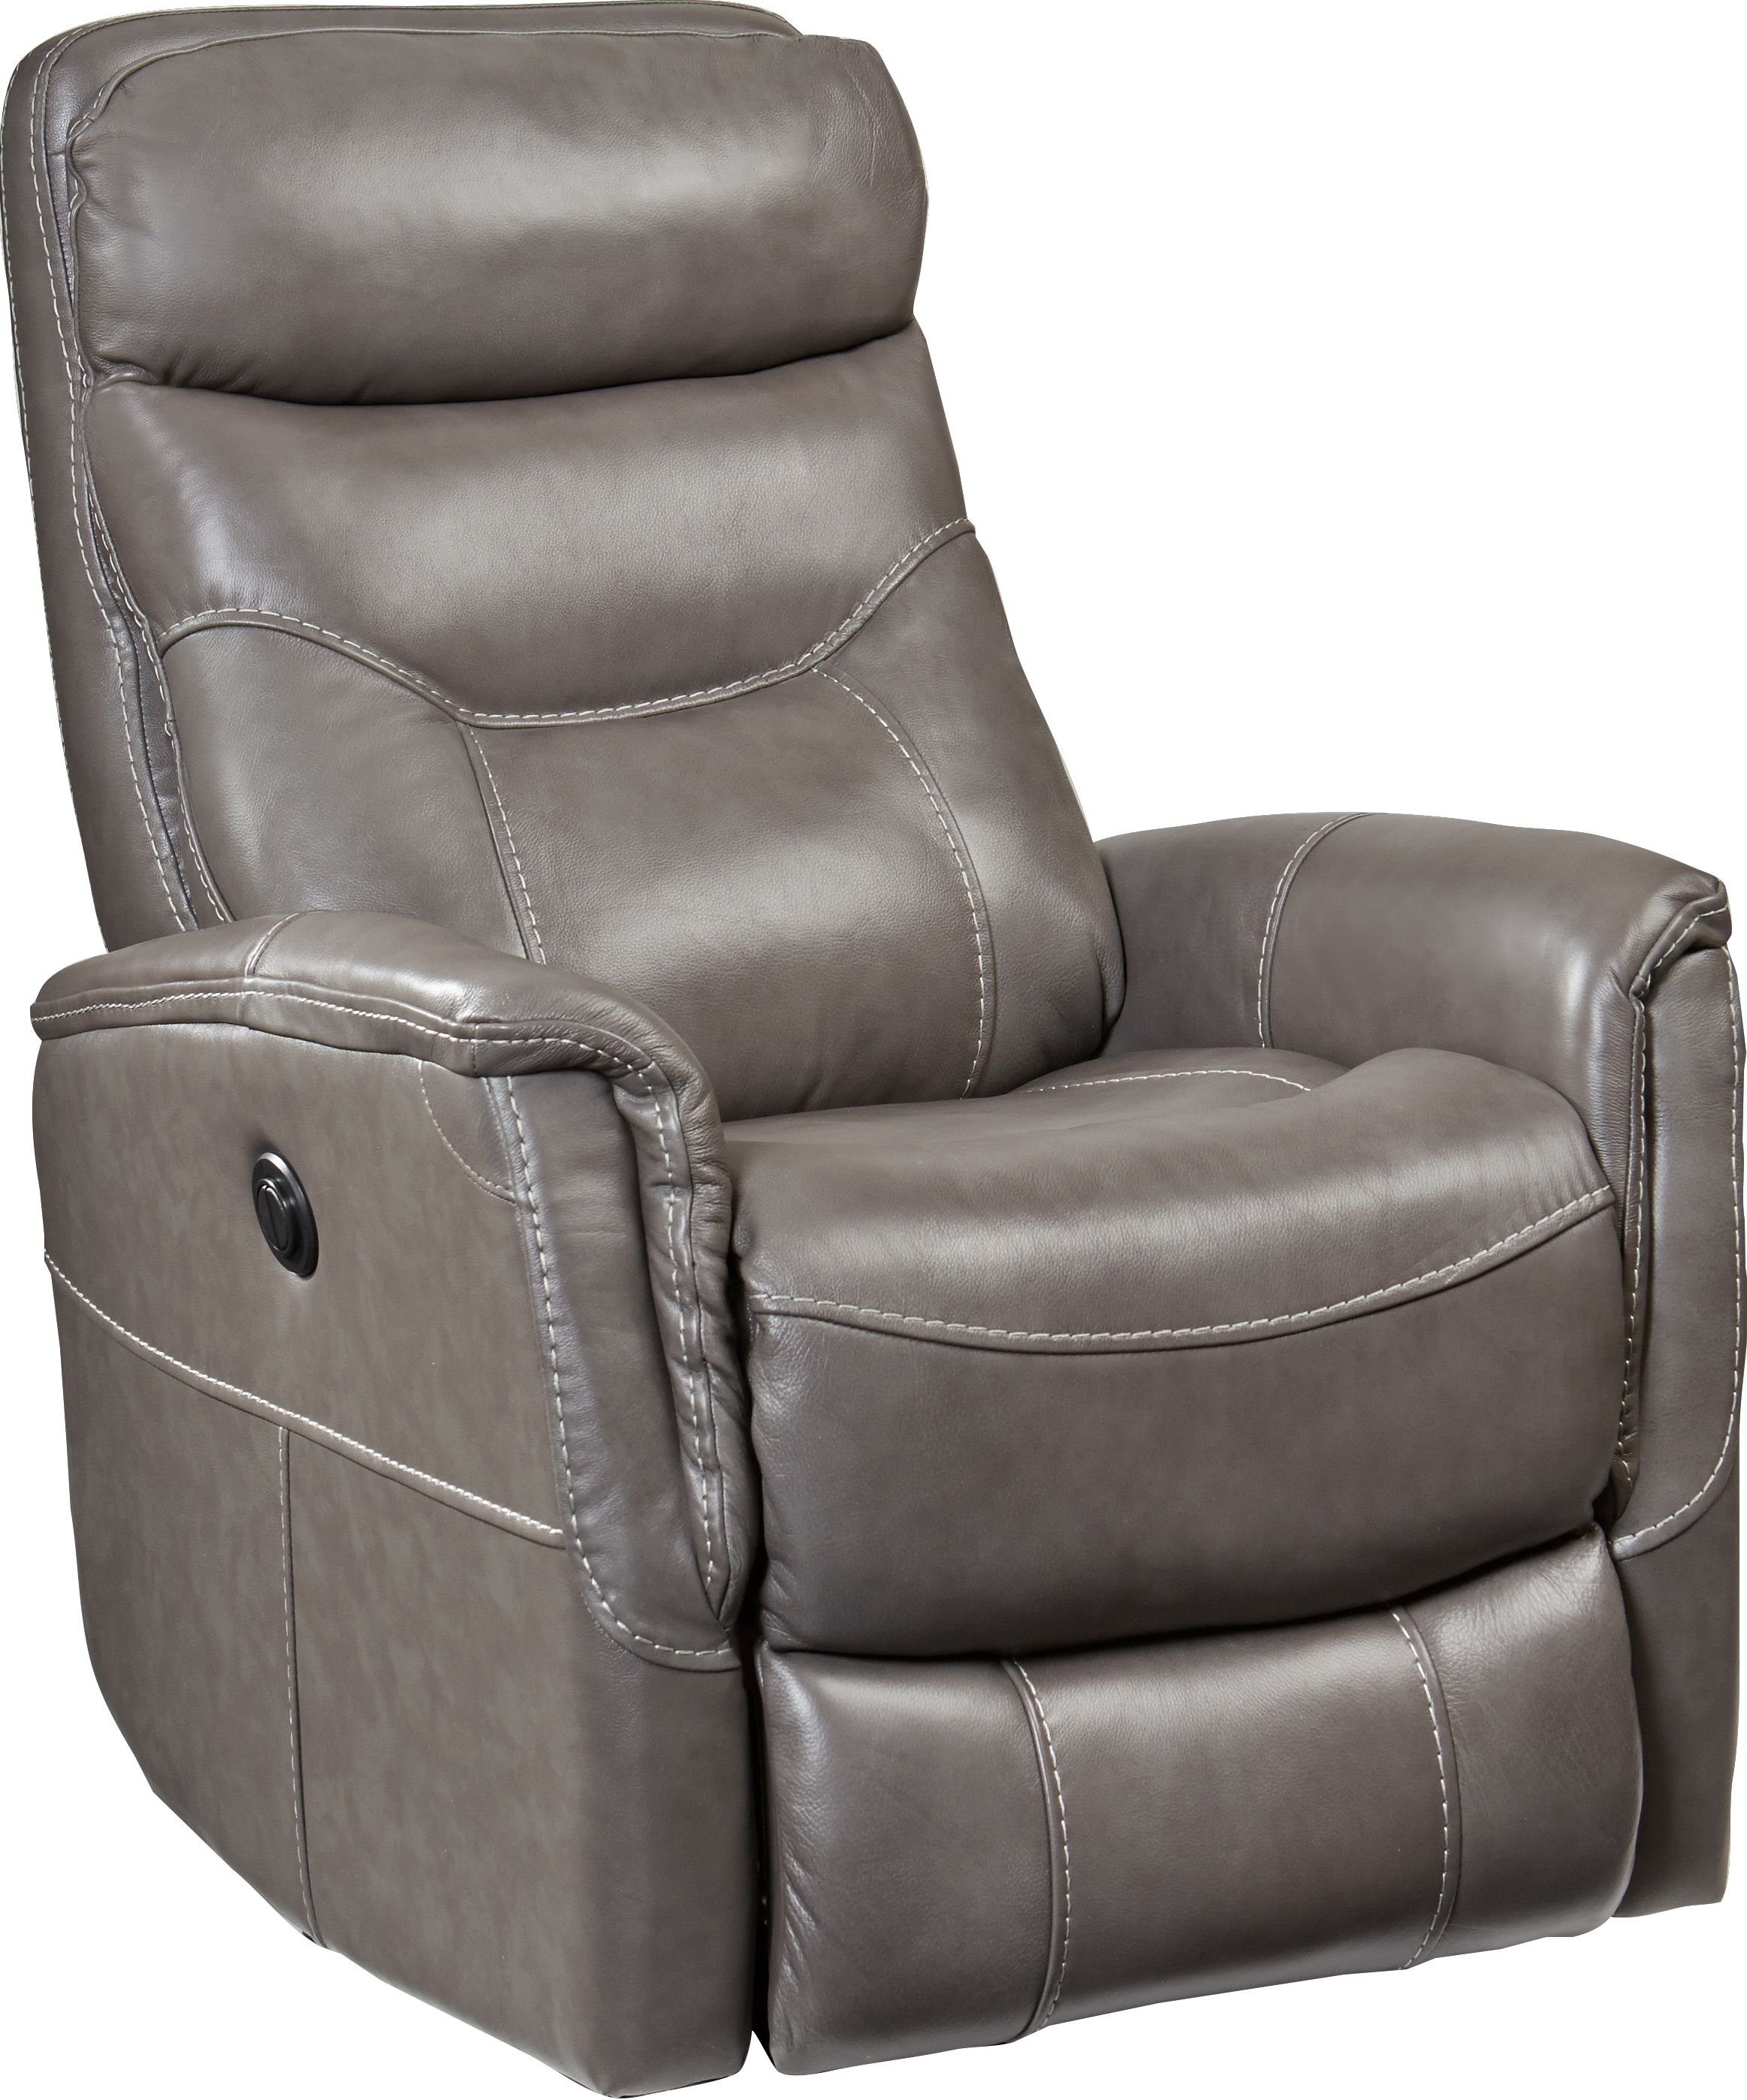 Cindy Crawford Home Bello Gray Leather Power Swivel Glider Recliner Swivel Glider Recliner Glider Recliner Recliner